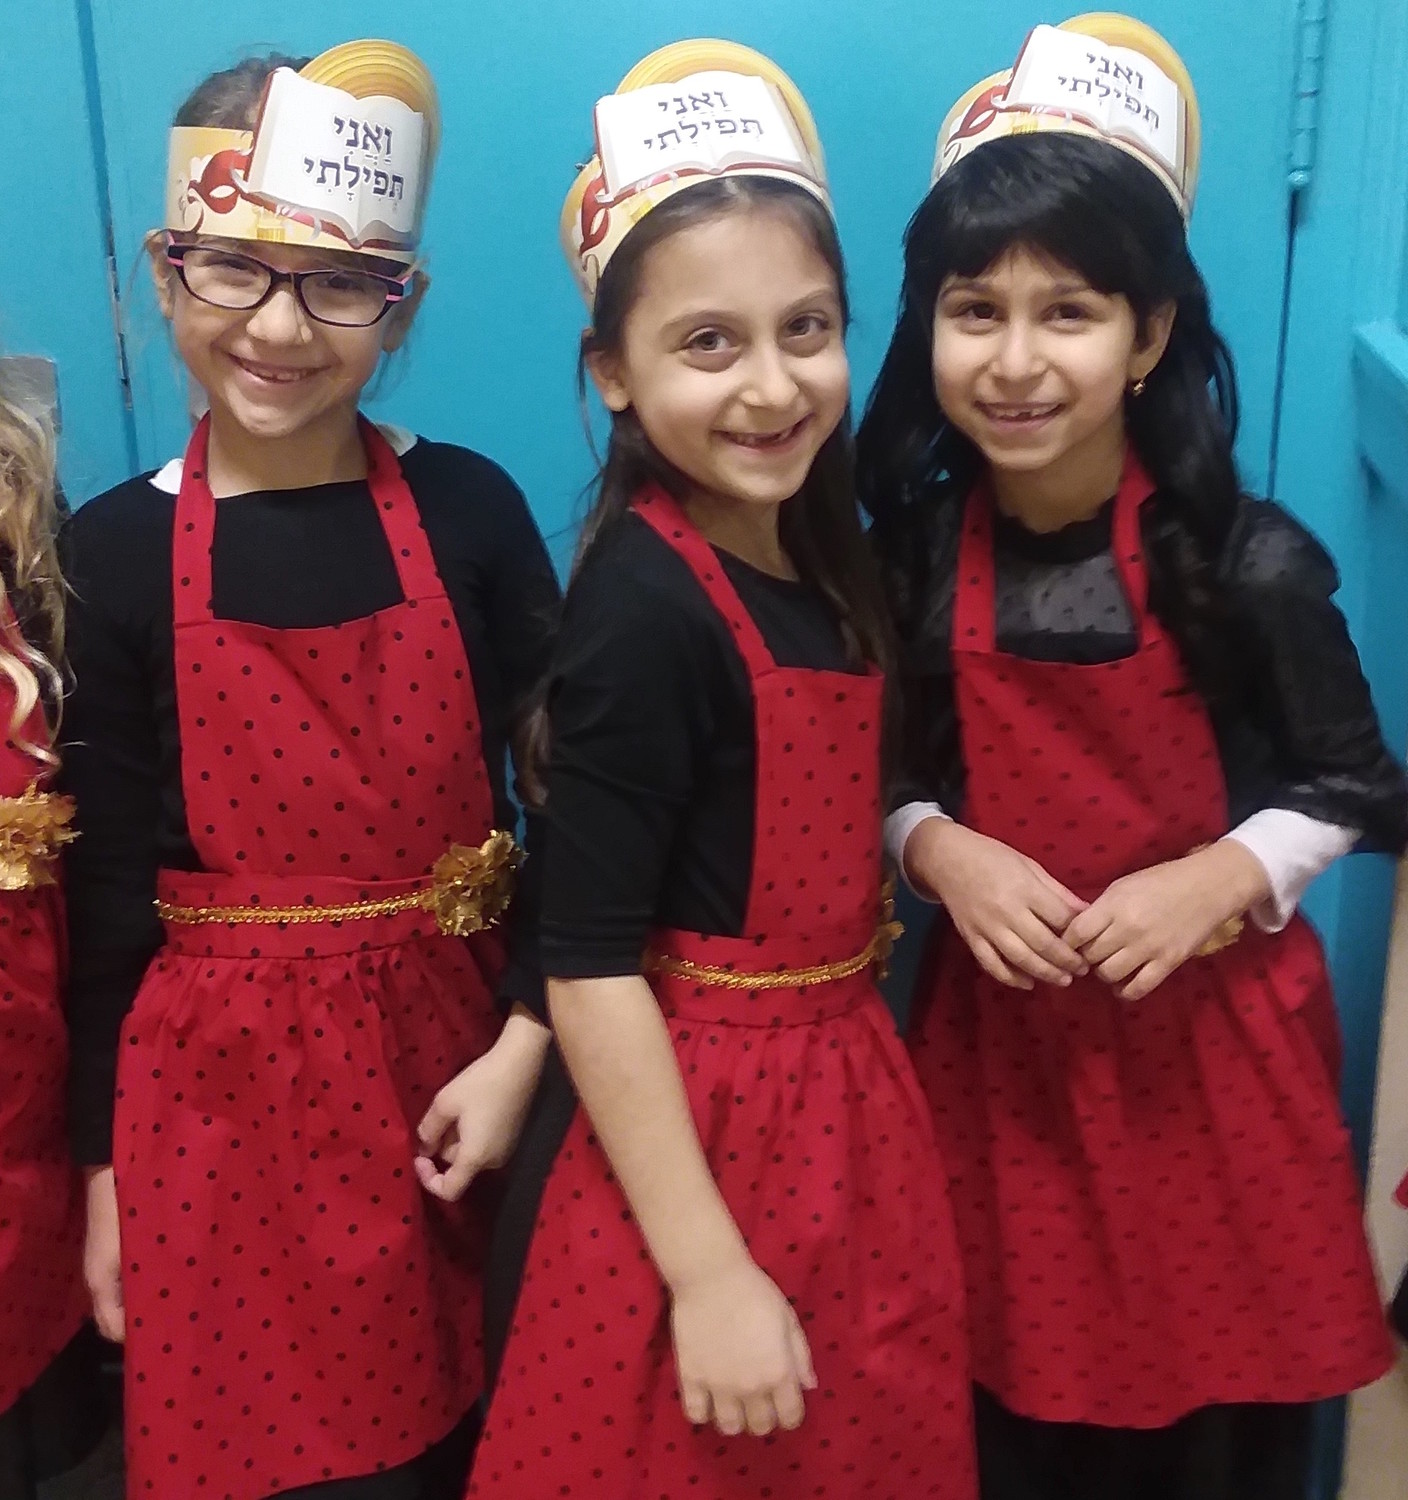 From left: Tohar Kobi, Lauren Greene, and Ahava Babayev, excited to receive their first siddurim.